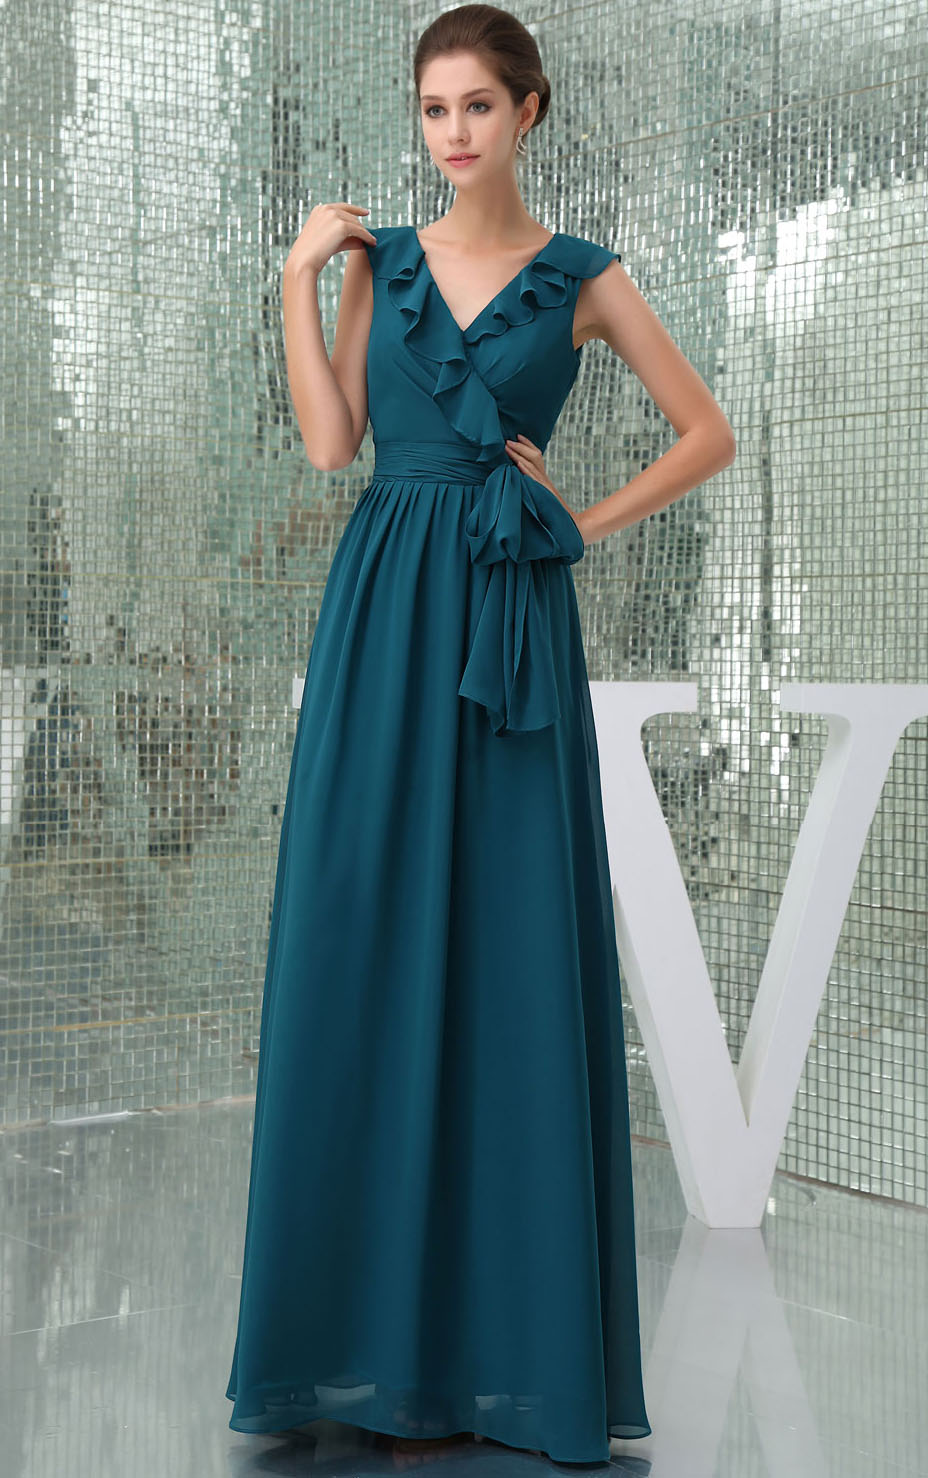 Chiffon Sleeveless A-line Natural Floor-length Bridesmaid Dresses